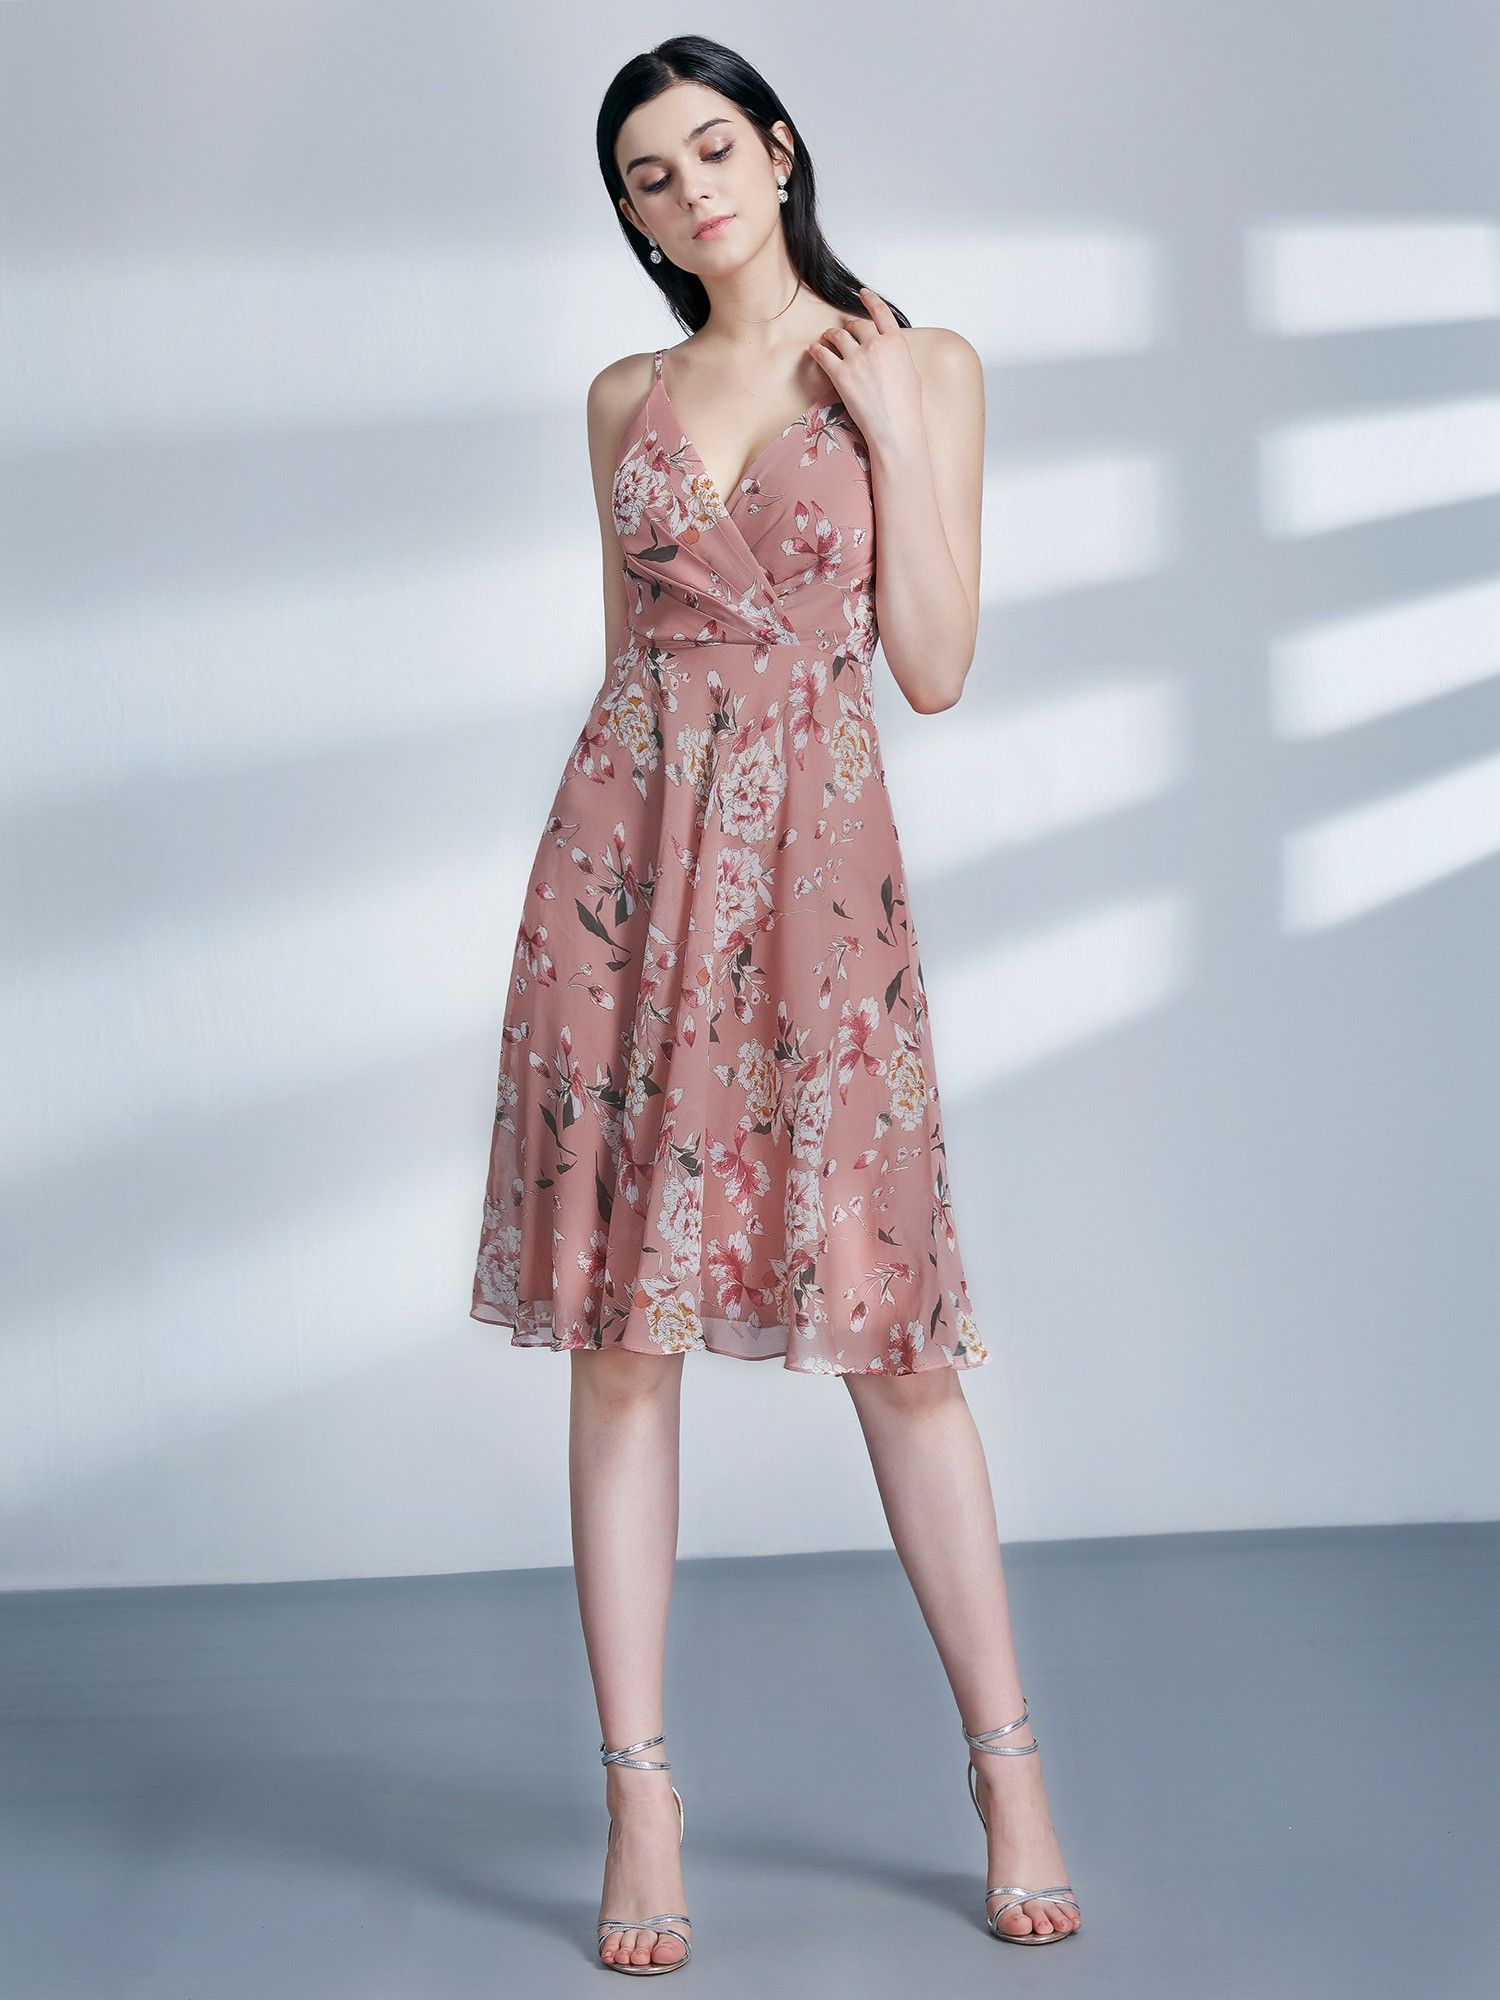 dcebeccc06f8 It's no secret that we at Ever-Pretty love a good floral dress, that's why  we designed these late summer beauties. Featuring muted colors and elegant  ...